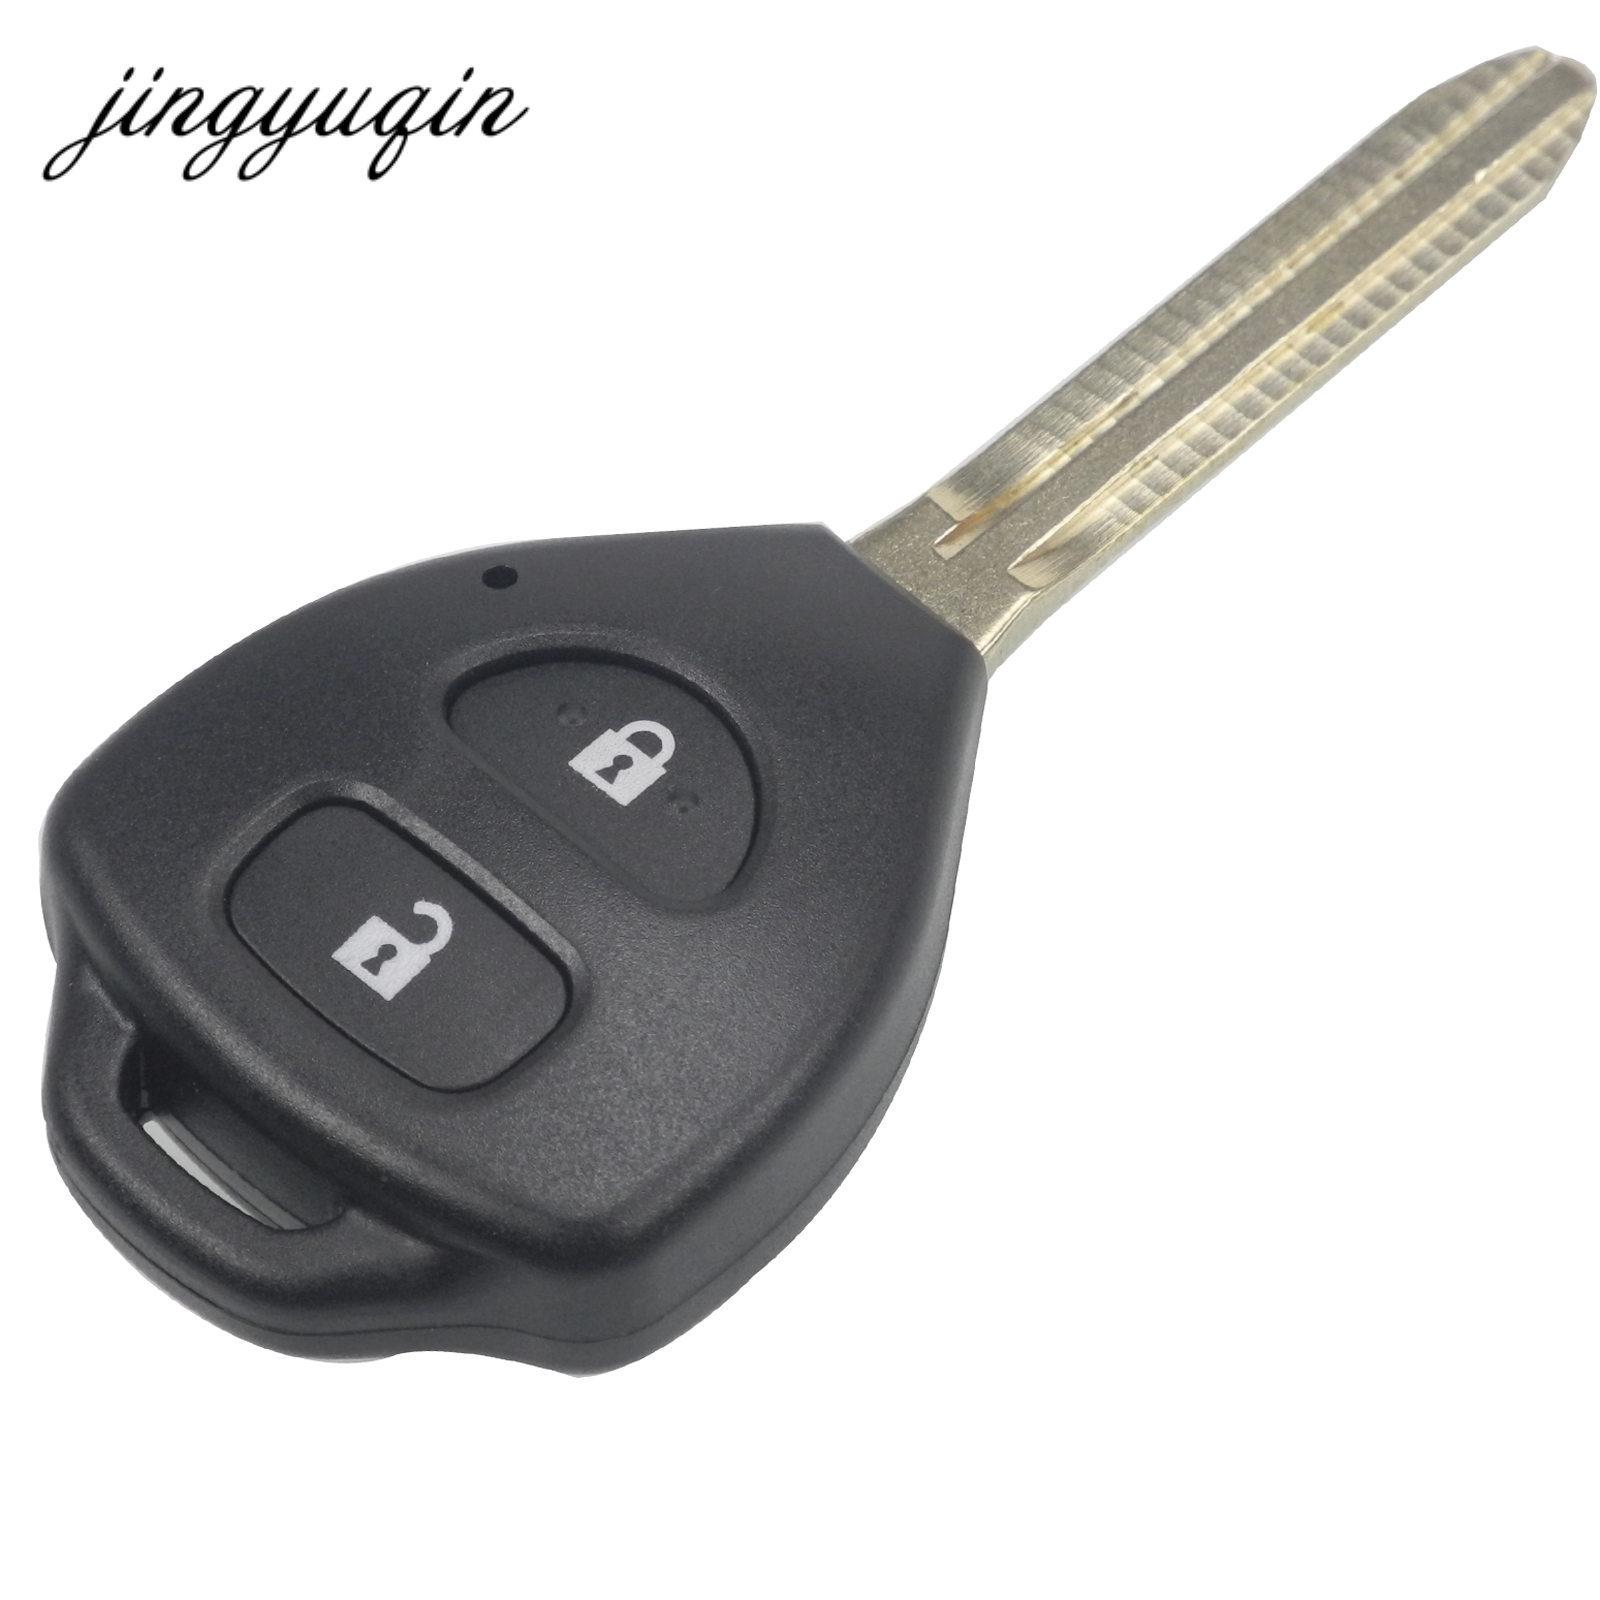 цена на jingyuqin Remote Key Case Shell For TOYOTA Rav4 Corolla Hilux Yaris Avalon Echo Prado TOY43 2 Button Fob